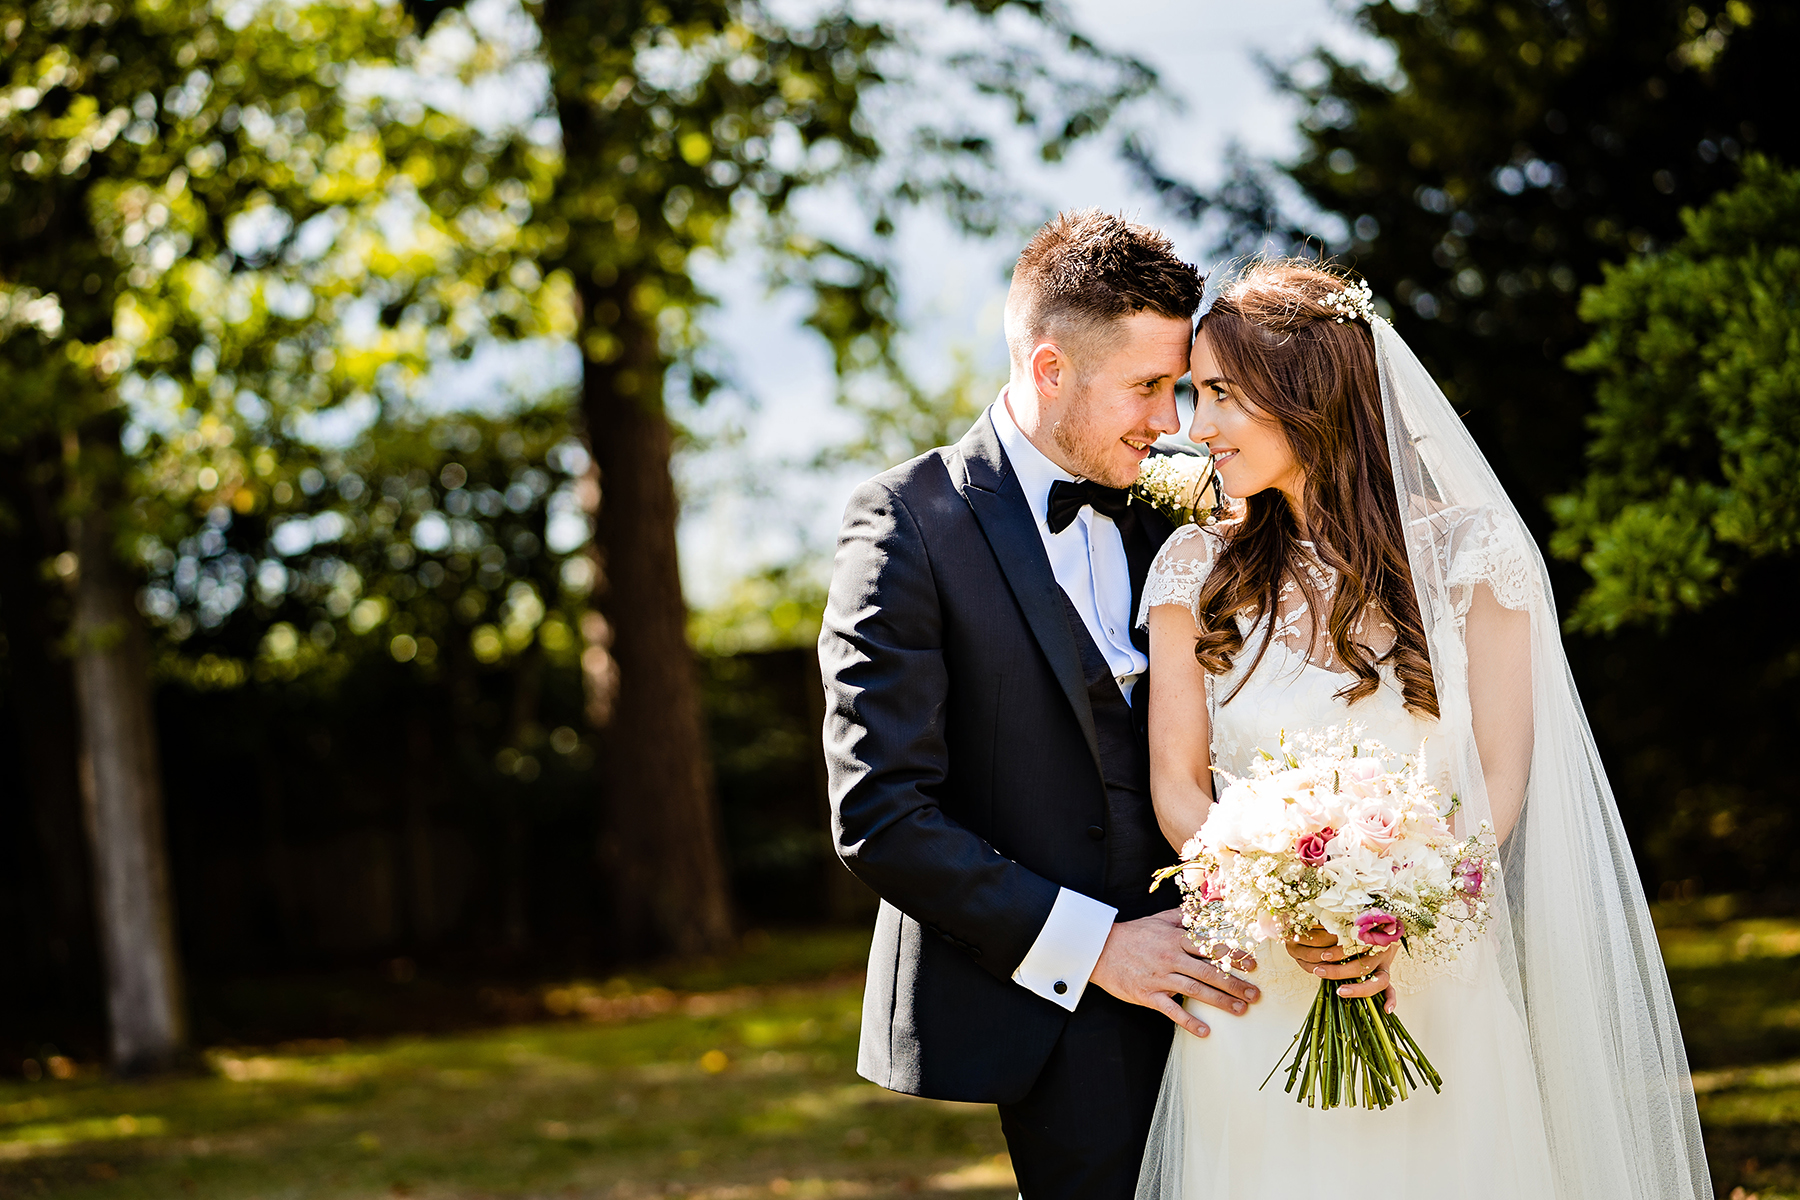 natural wedding photography at Colshaw Hall